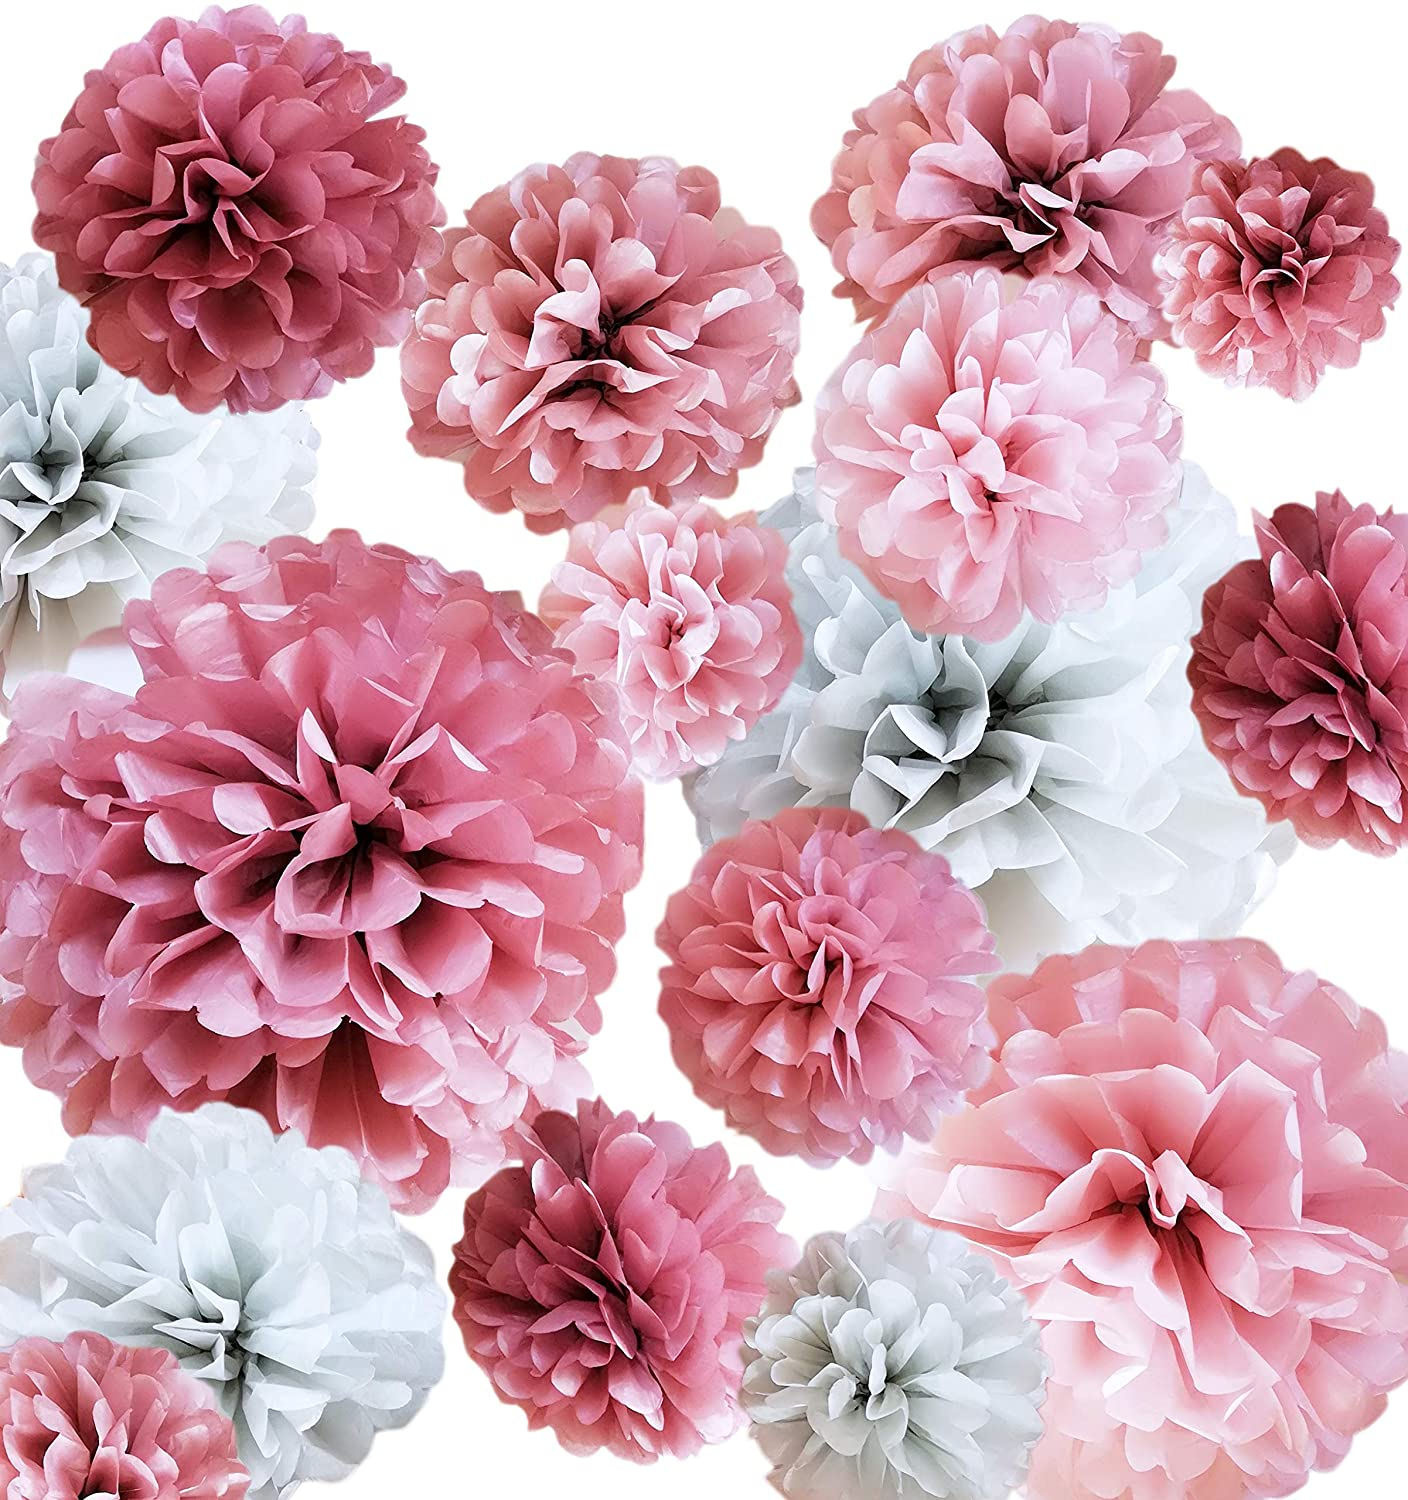 "20 PC Tissue Paper Pom Poms Decoration - Dusty Rose, Mauve, Blush Pink, Grey - Party Decoration Kit (14"", 10"", 8"", 6"") - Weddings - Bachelorette - Bridal Showers - Baby Showers - Birthday Decorations 10"" 8"" VINANT"